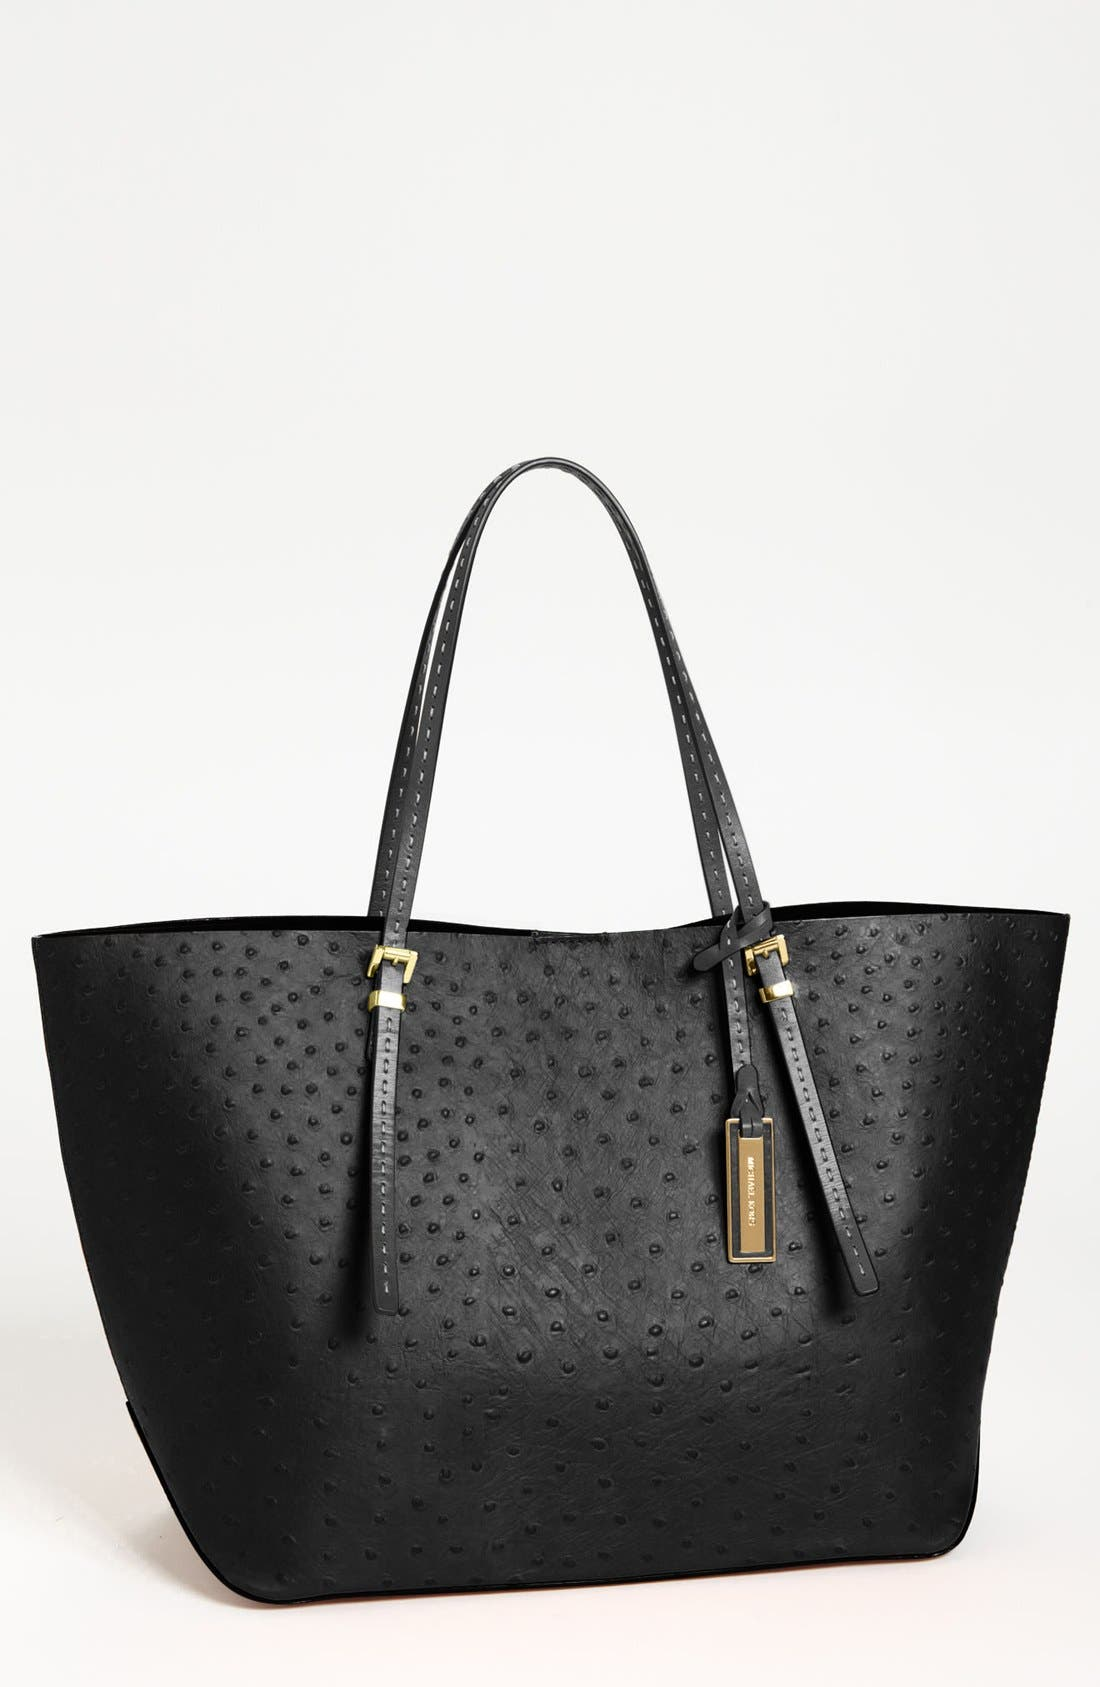 Alternate Image 1 Selected - Michael Kors 'Gia' Ostrich Embossed Leather Tote